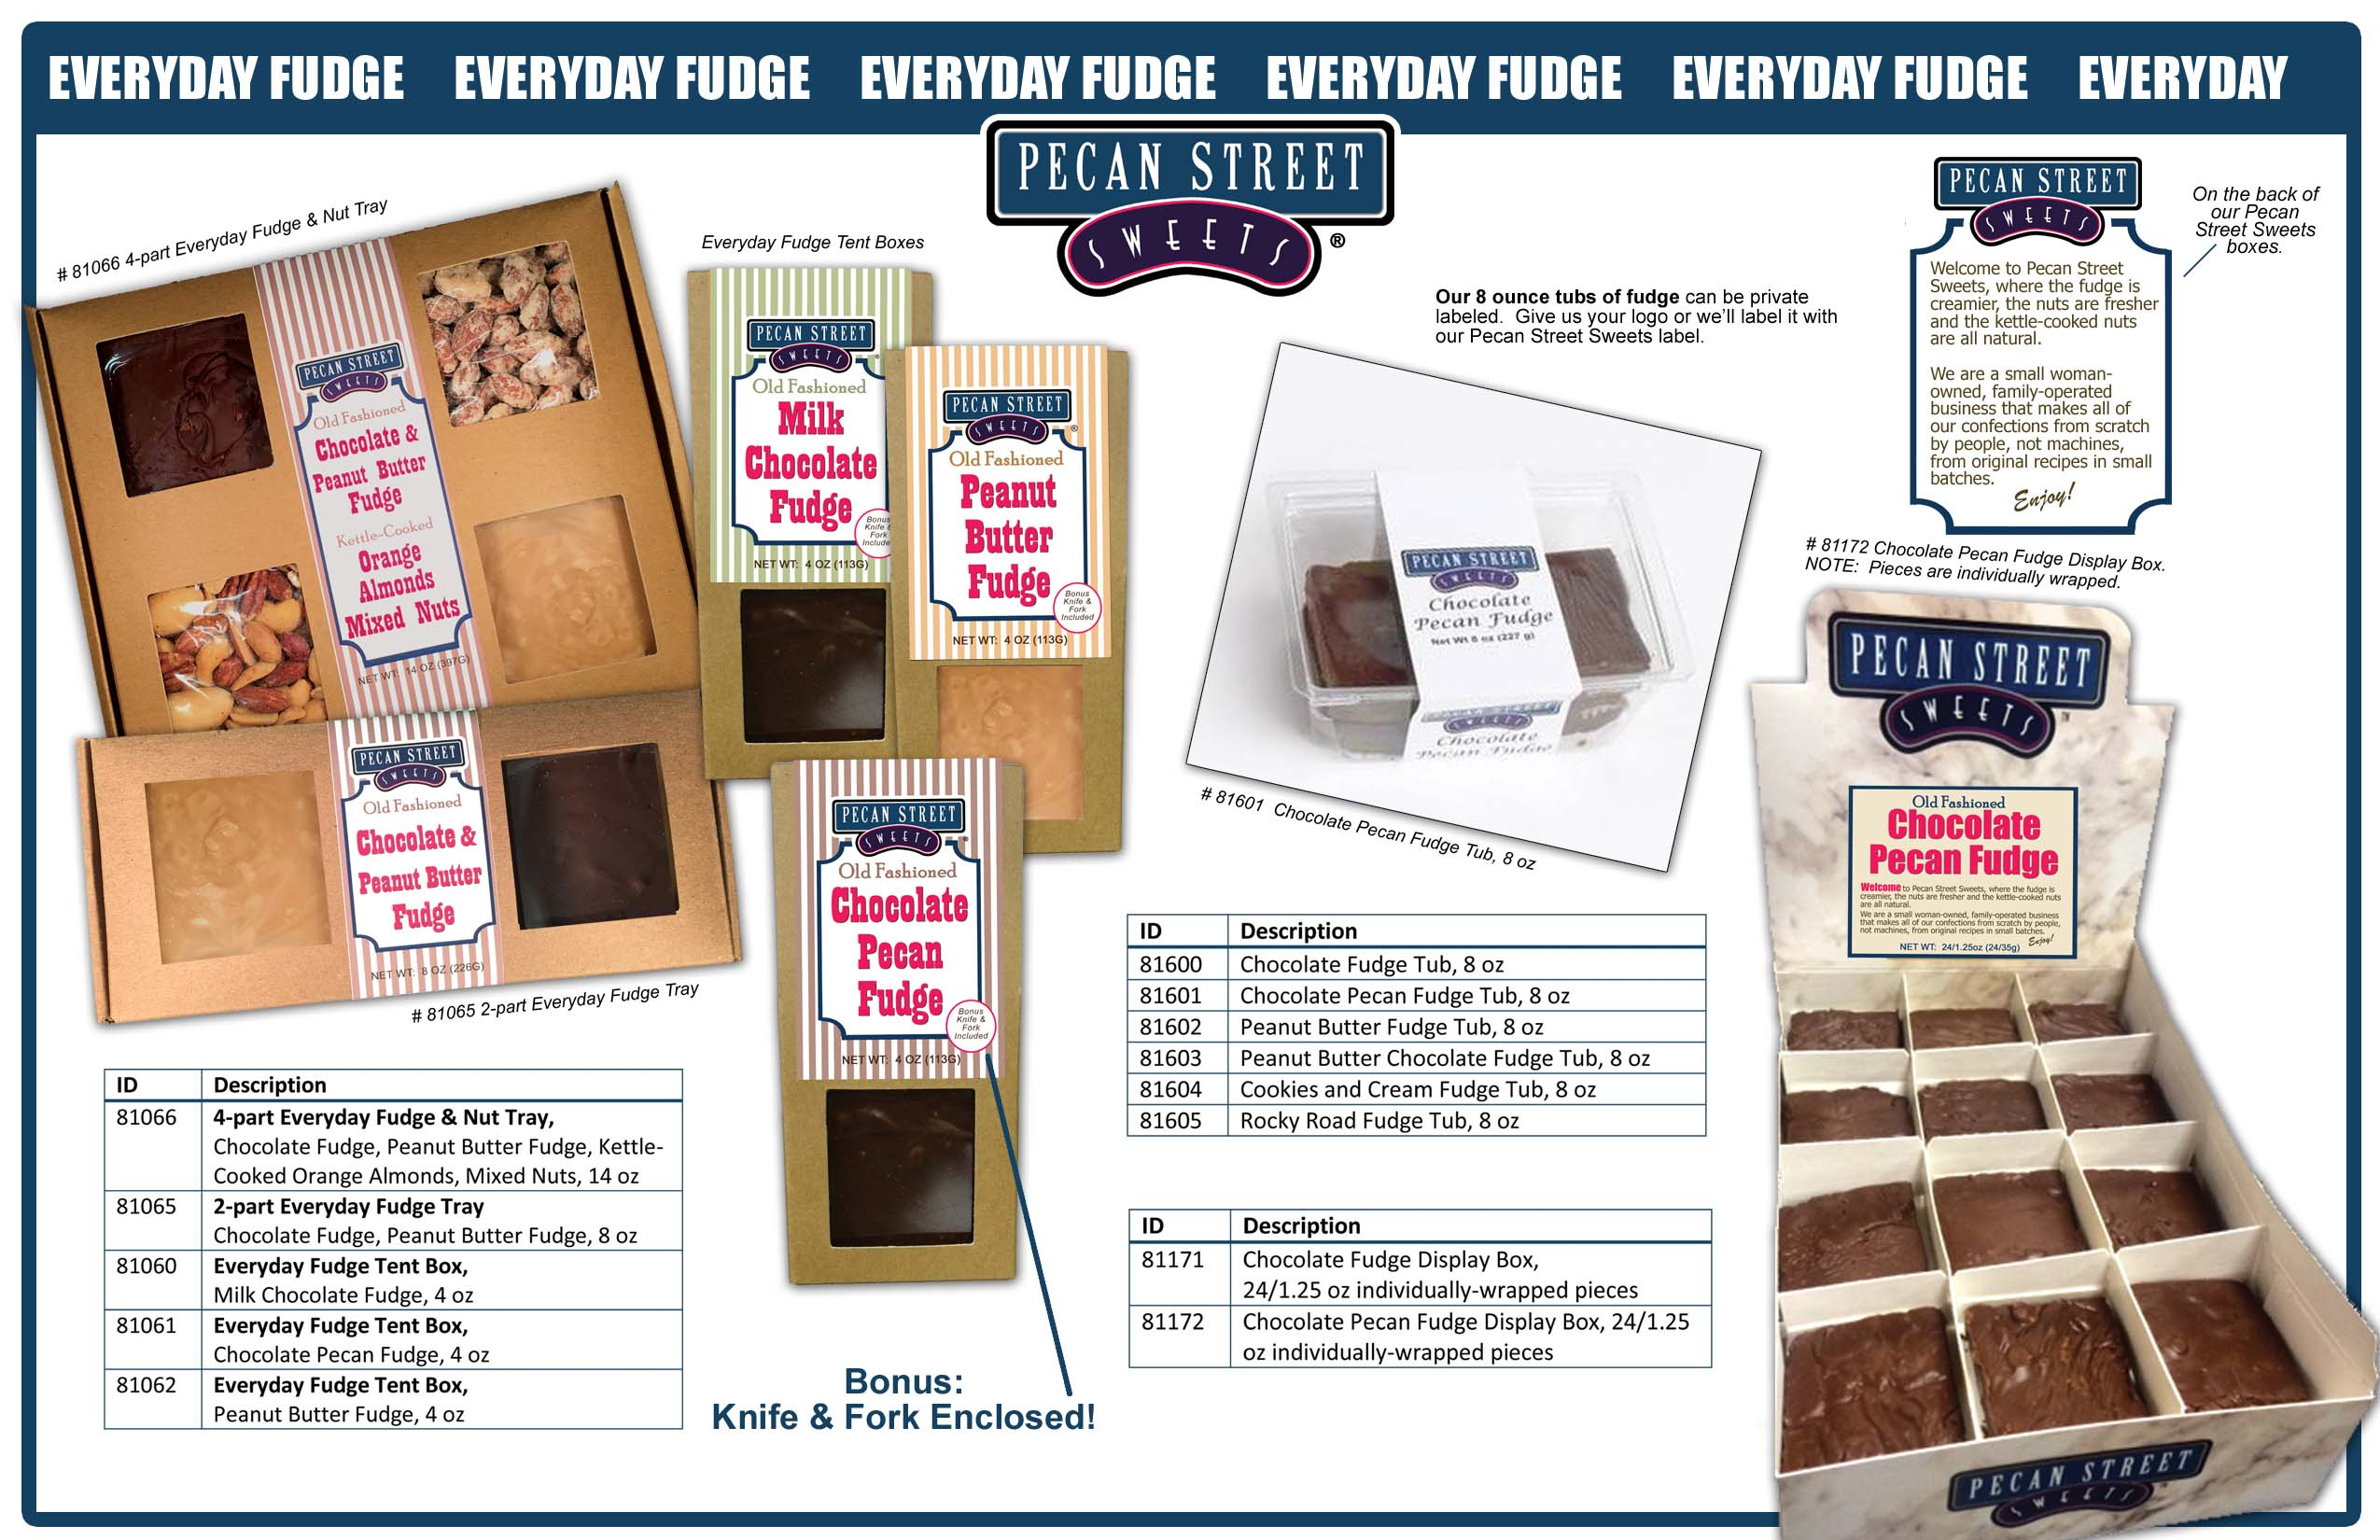 fudge-brochure-p-2-3-low-res-copy.jpg